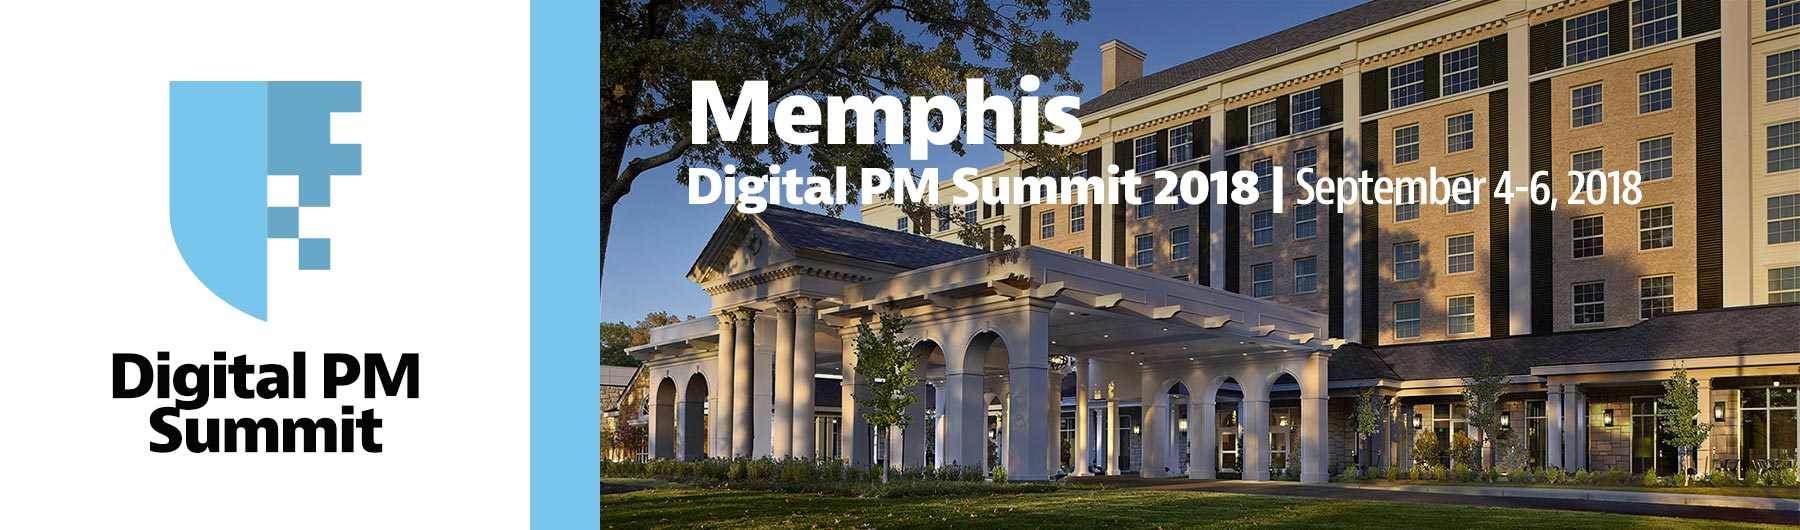 COMPLETE: Digital PM Summit 2018 | Memphis